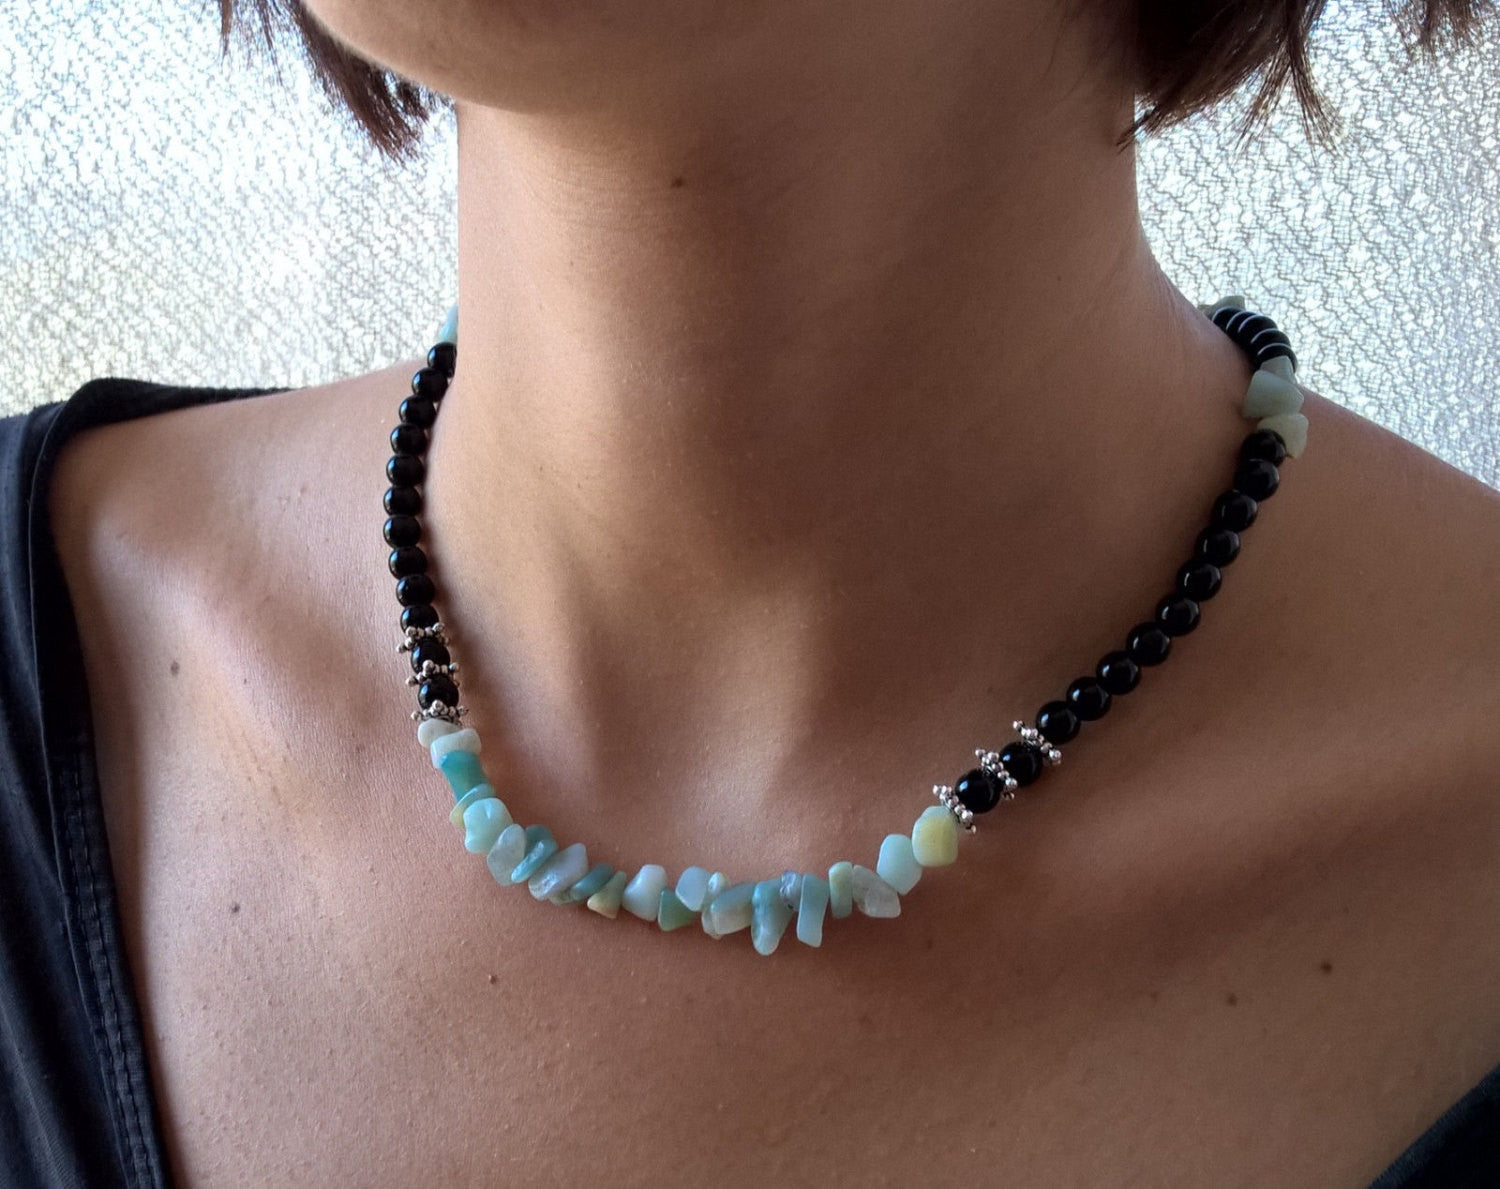 Onyx & Aquamarine collar necklace, Natural stone beaded boho Mala necklace for women